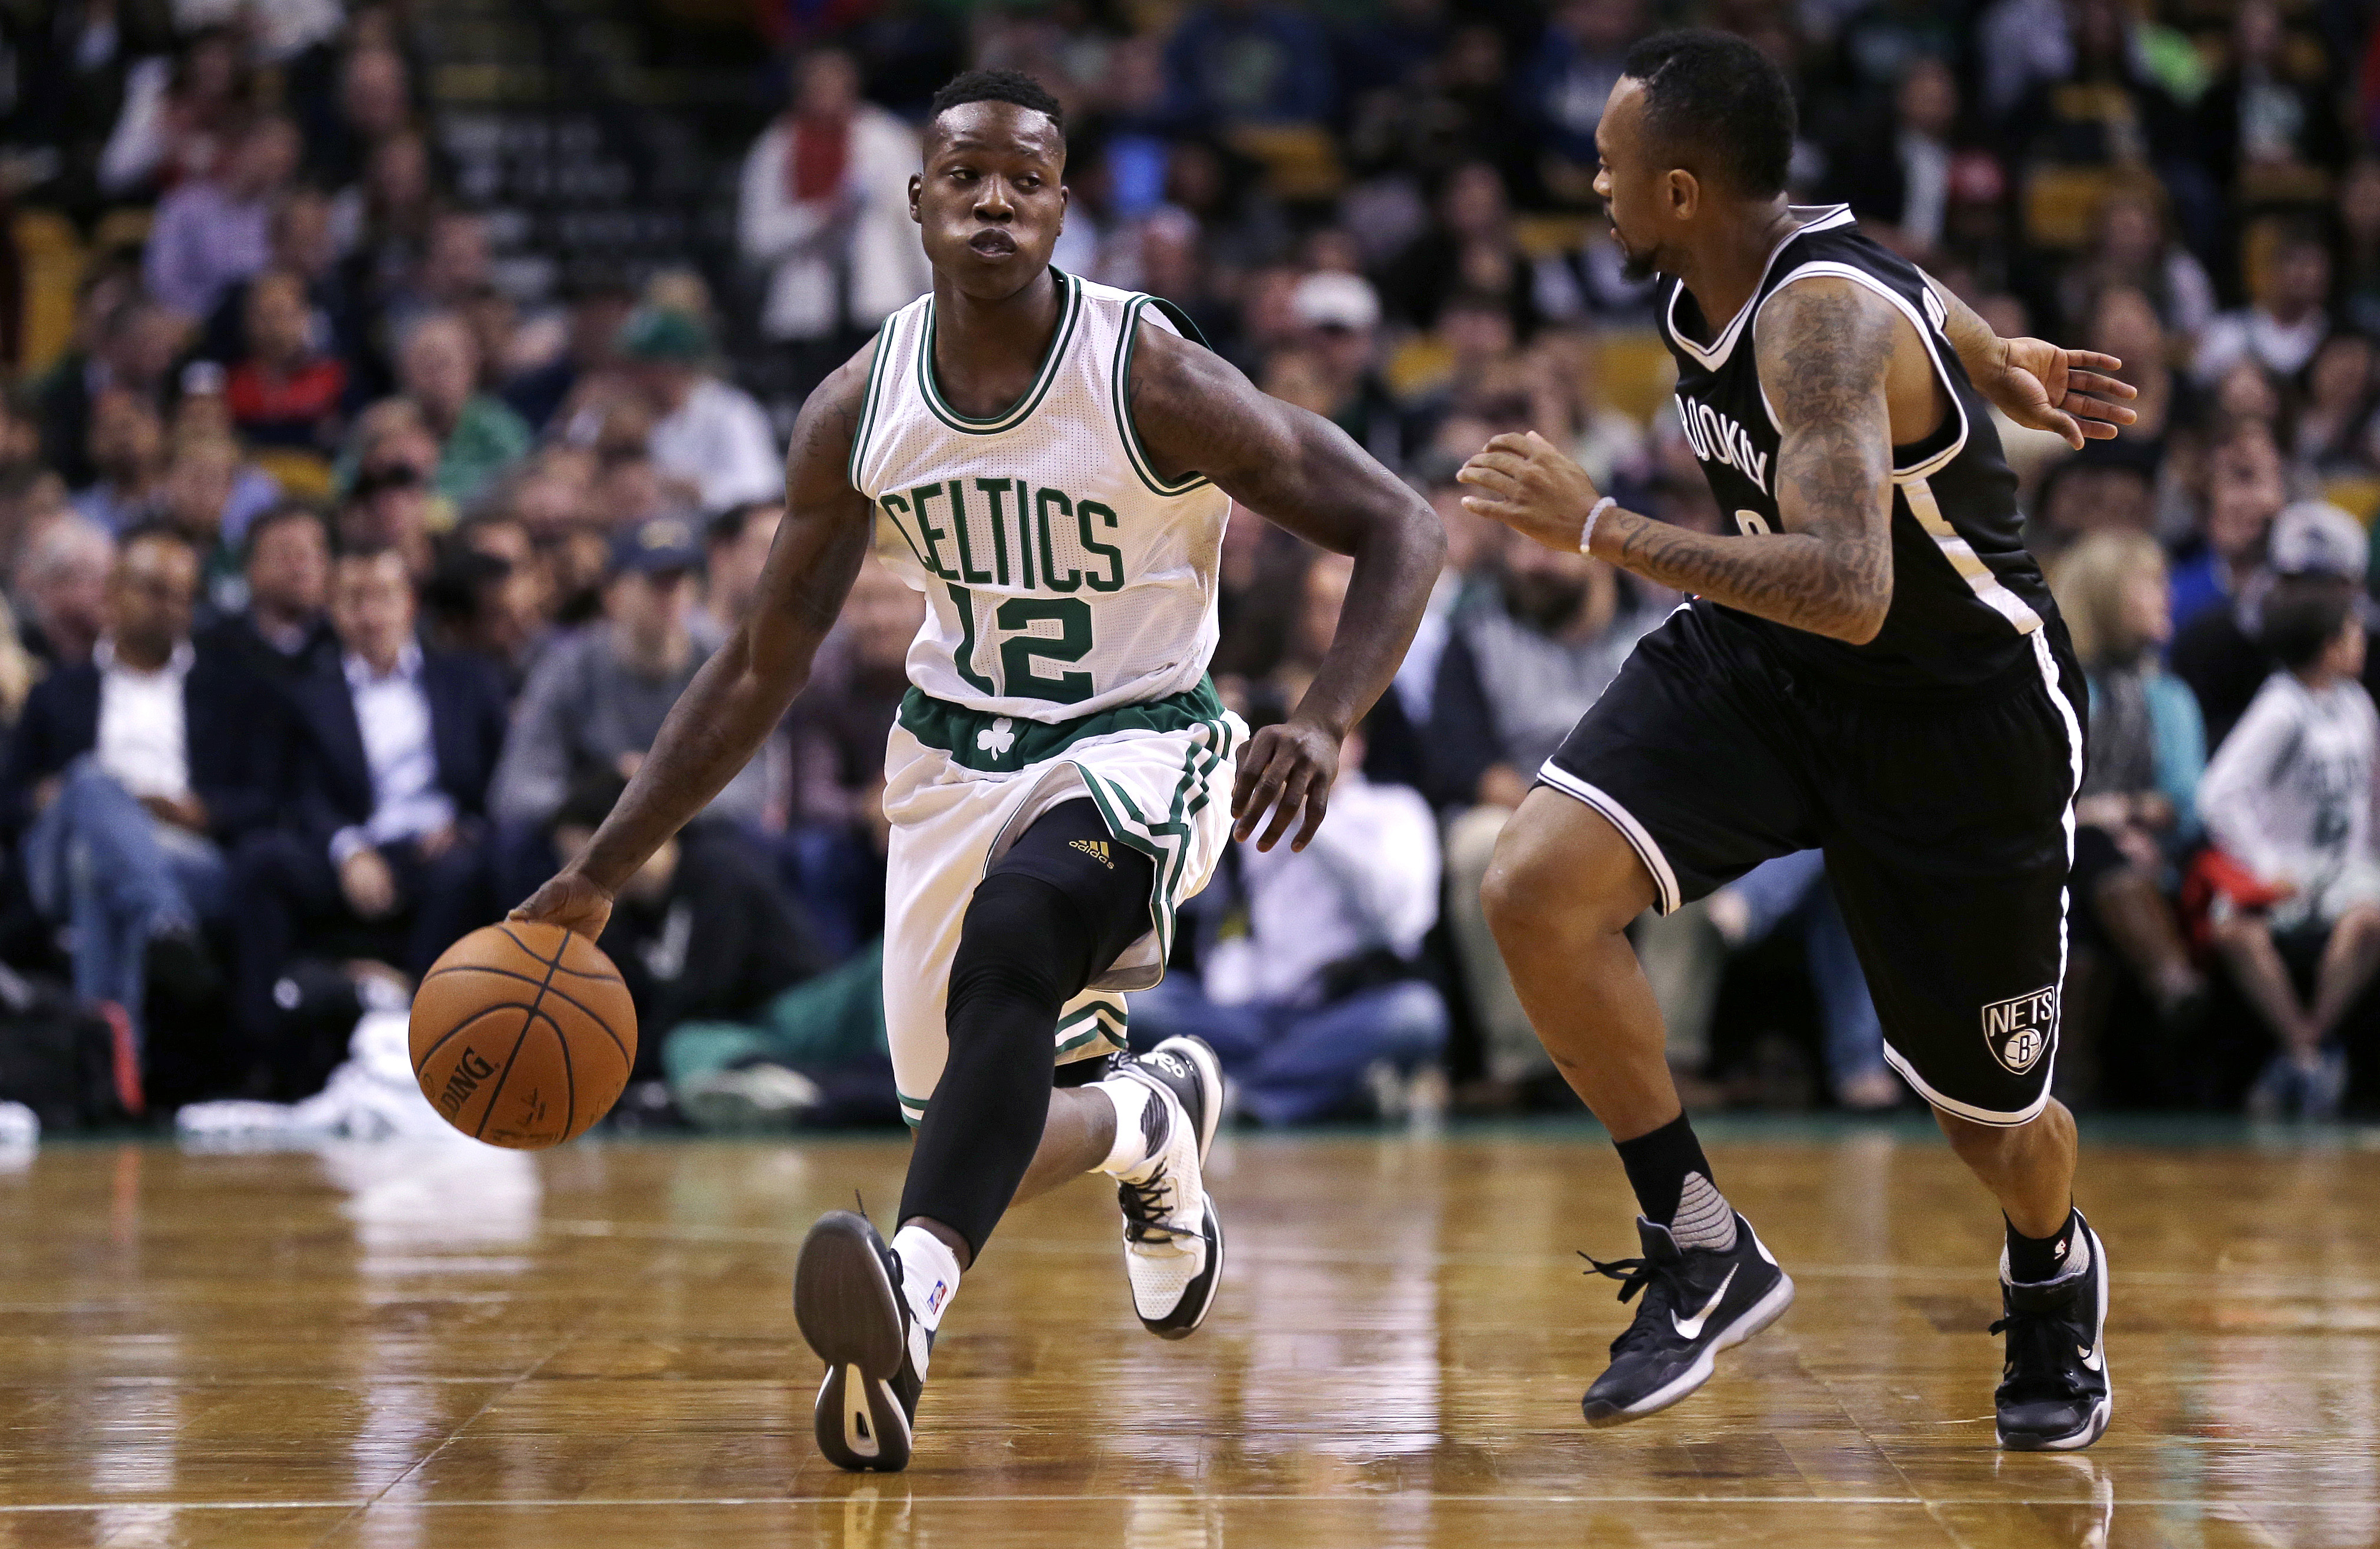 Boston Celtics guard Terry Rozier (12) tries to outrun Brooklyn Nets guard Ryan Boatright, right, while bringing the ball up court during the first half of an NBA preseason basketball game in Boston, Monday, Oct. 19, 2015. (AP Photo/Charles Krupa)